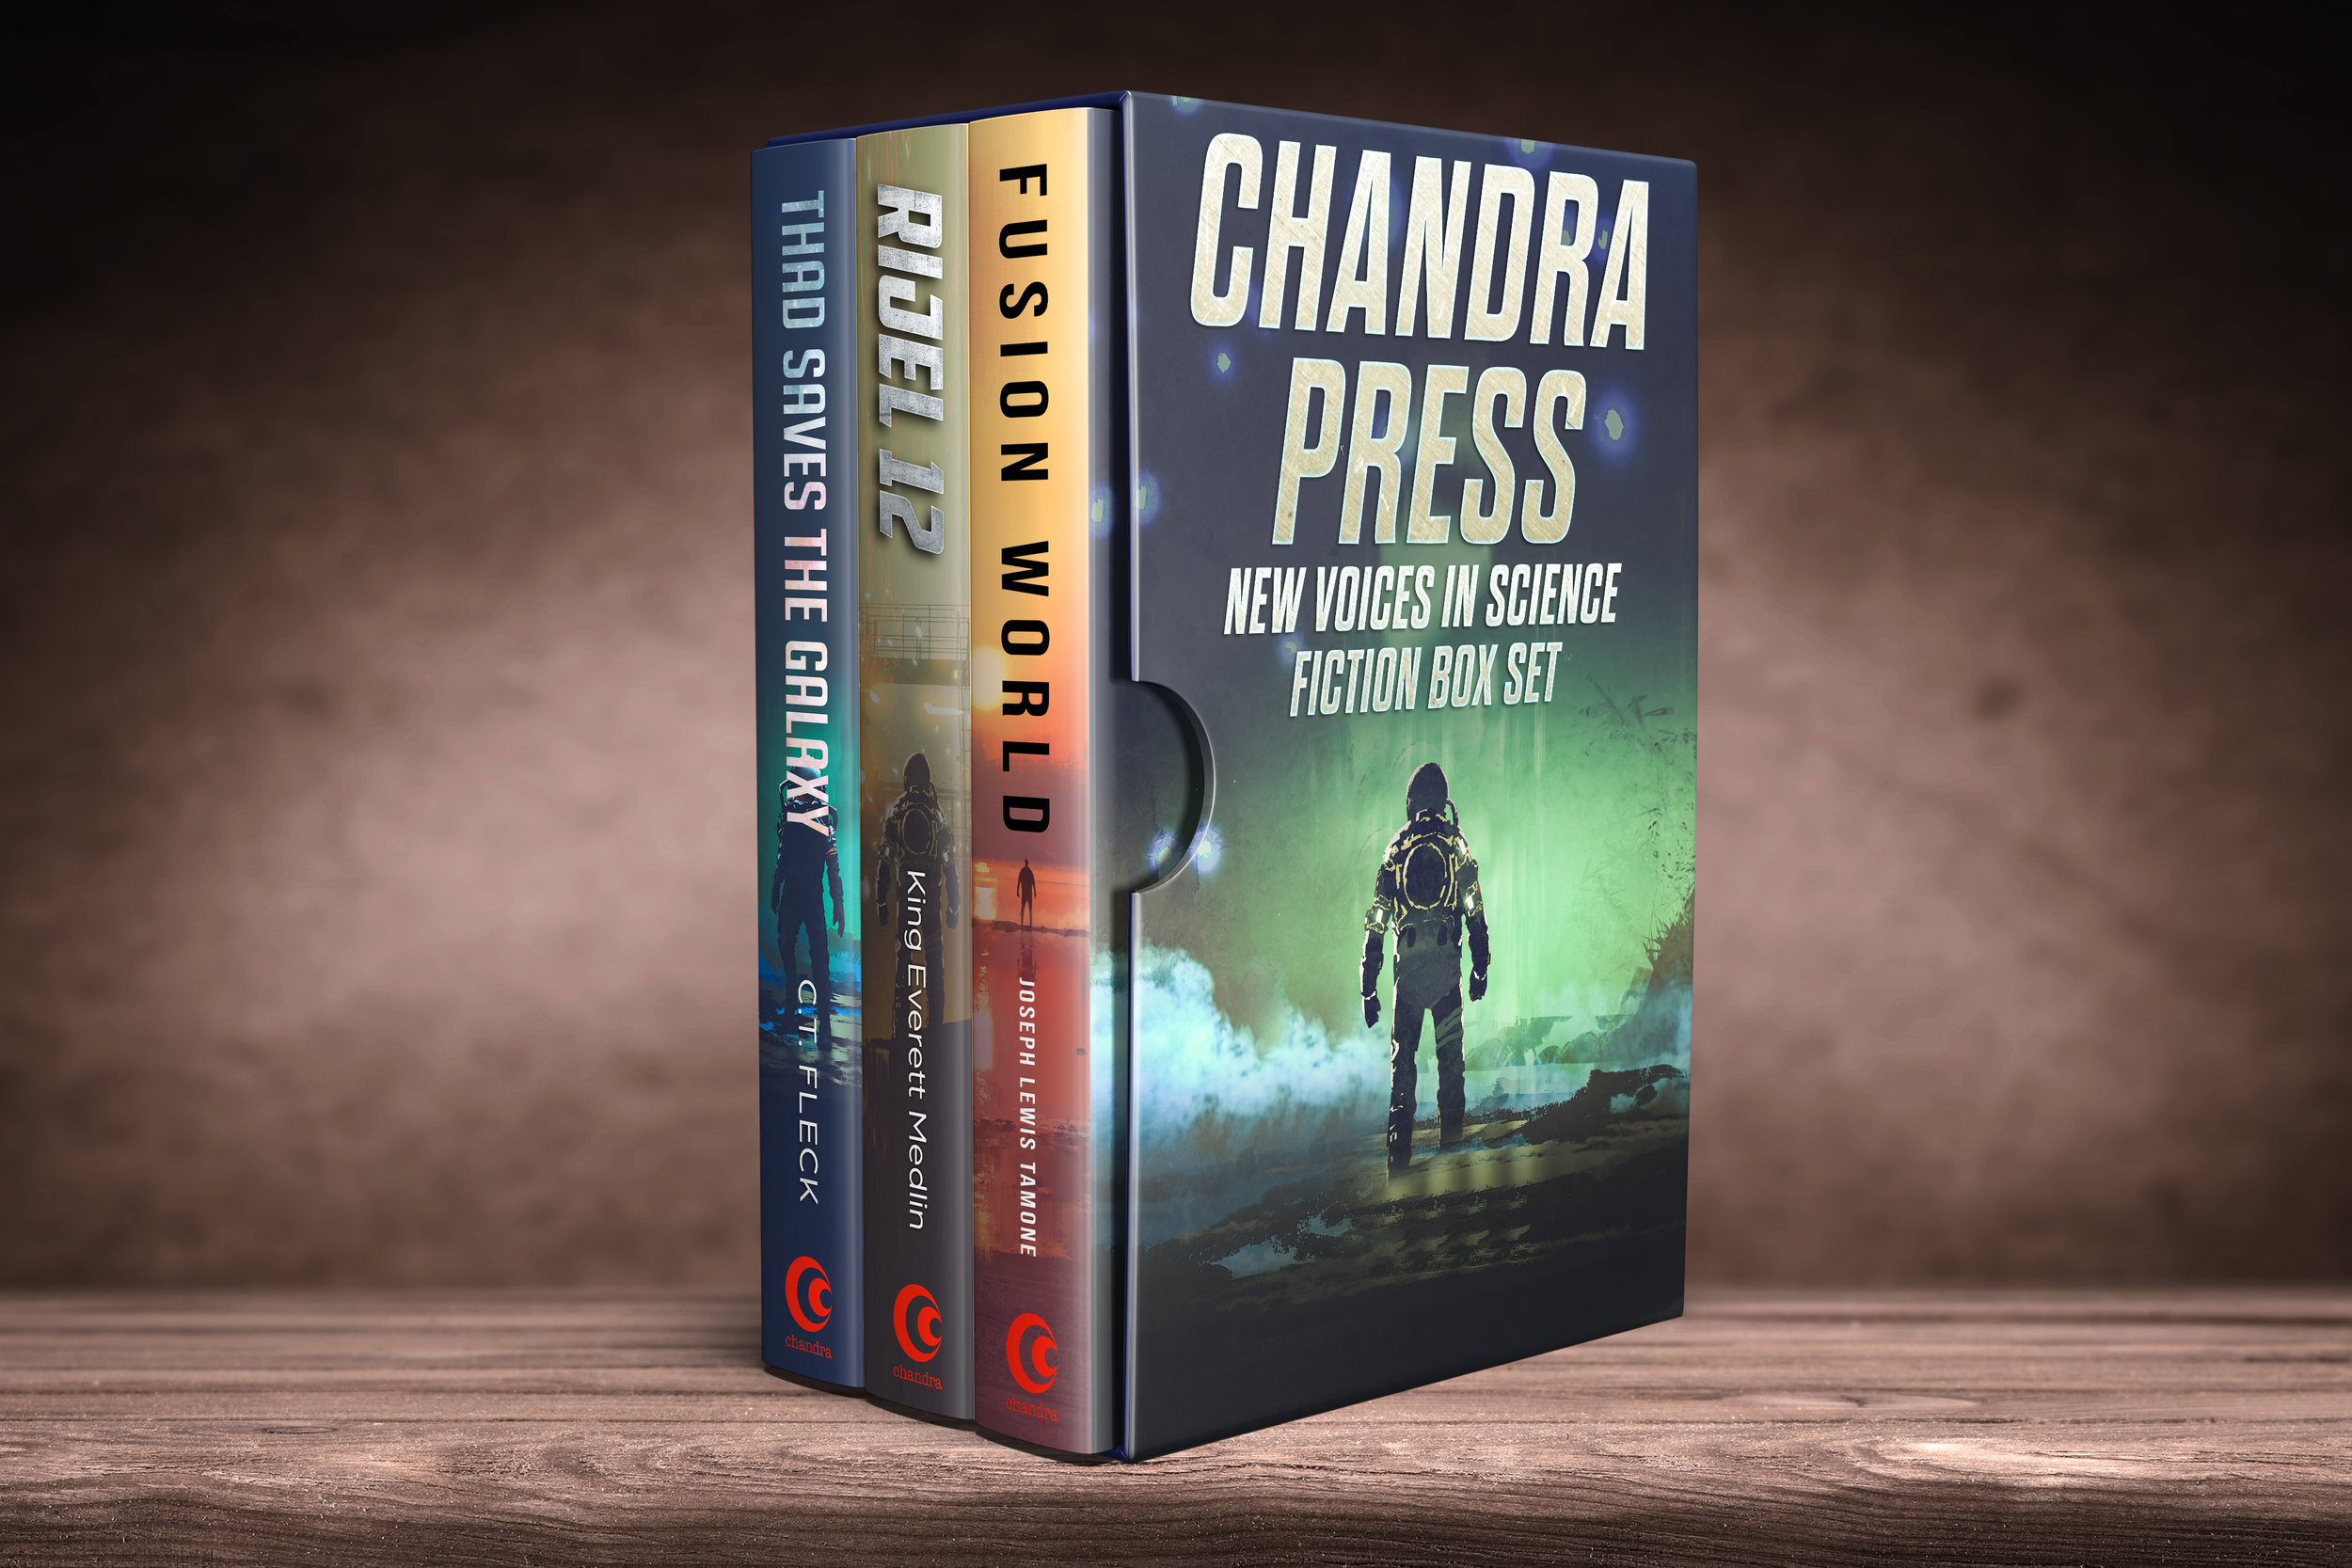 New Voices in Science Fiction Box Set